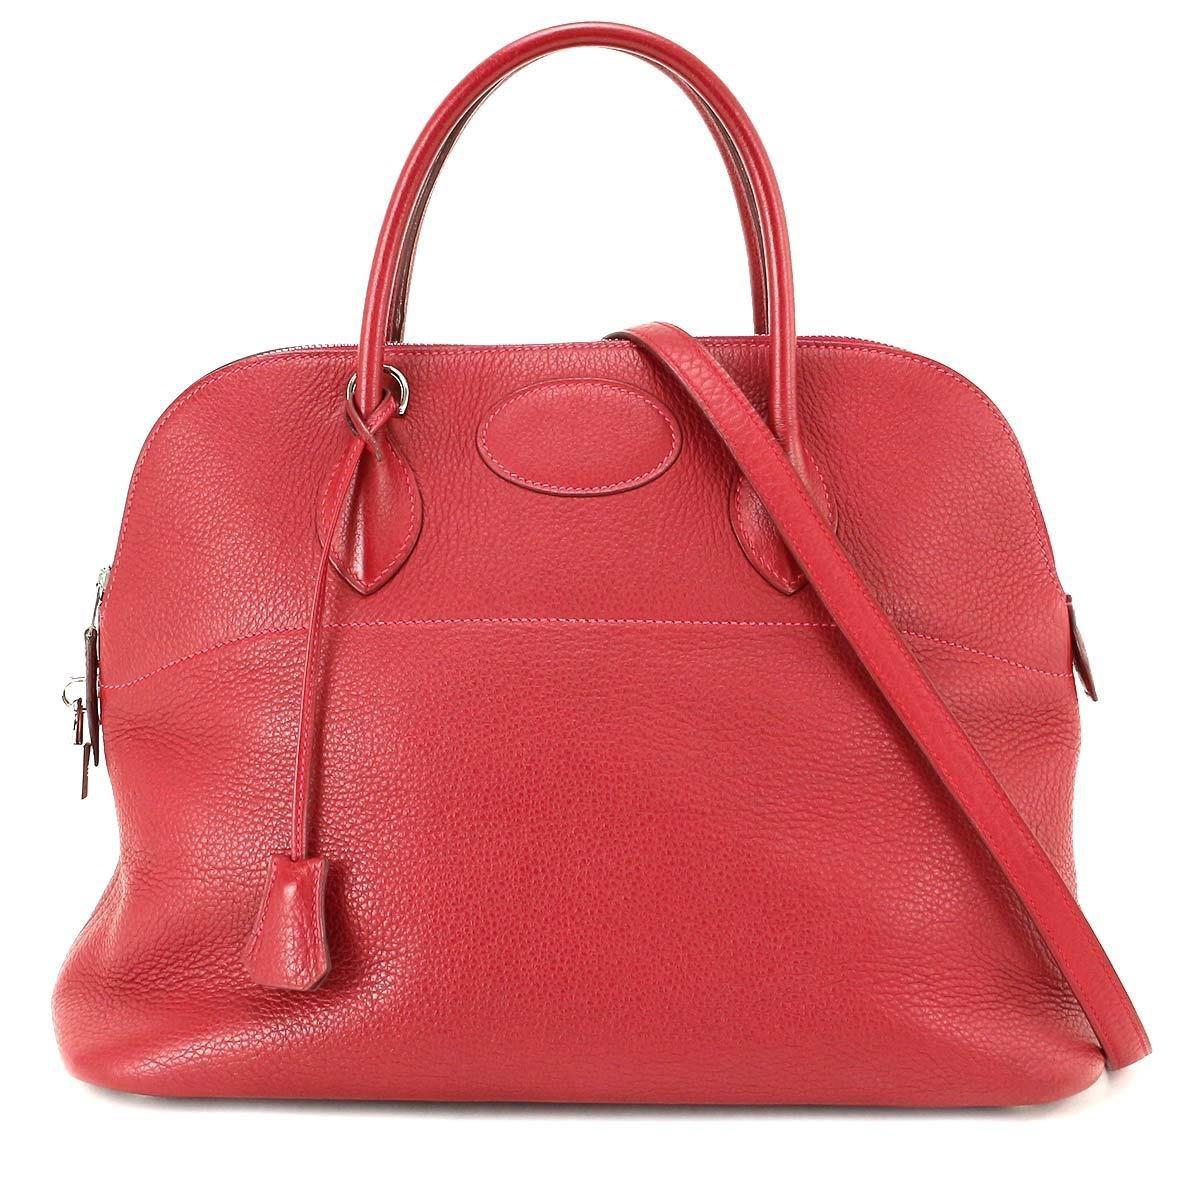 d8592a765824 ... indigo limited edition e25ed 137e9  discount lyst hermès bolide 35  traurillon clemence rouge vif 2way hand bag 8dfad 9b0d0